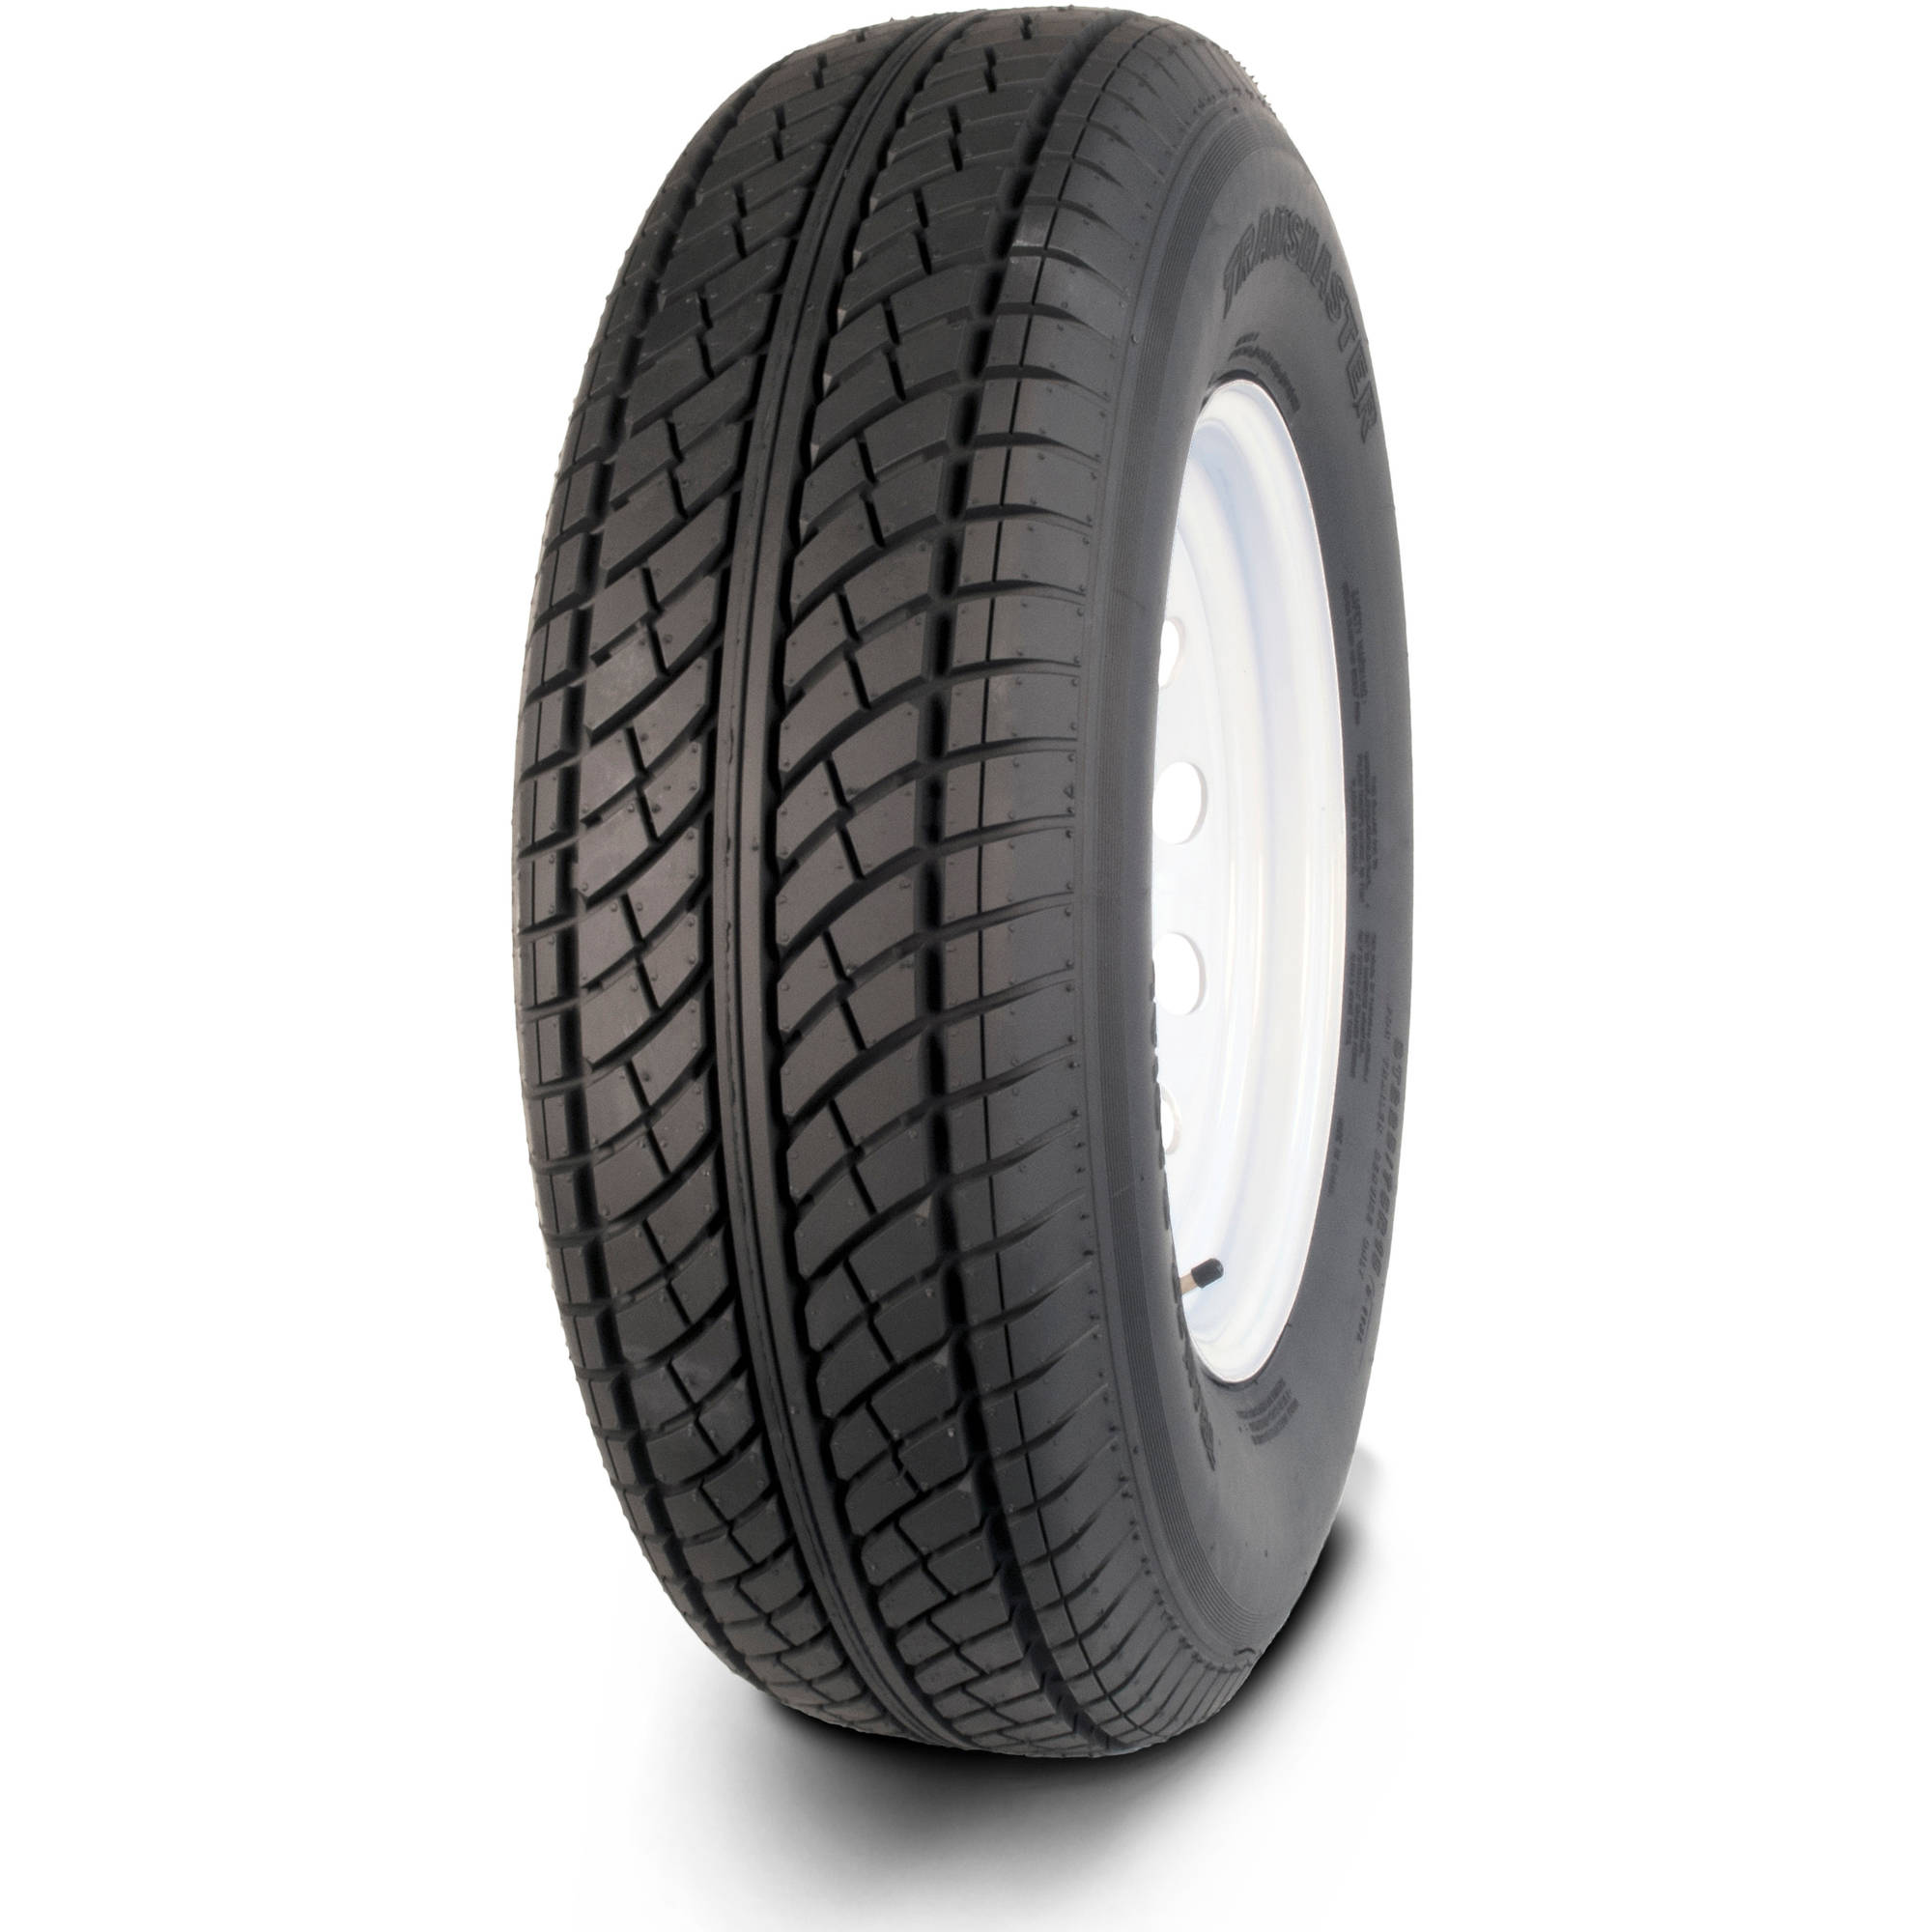 Greenball Transmaster ST185/80R13 6 Ply Radial Trailer Tire and Wheel Assembly, 5 Lug